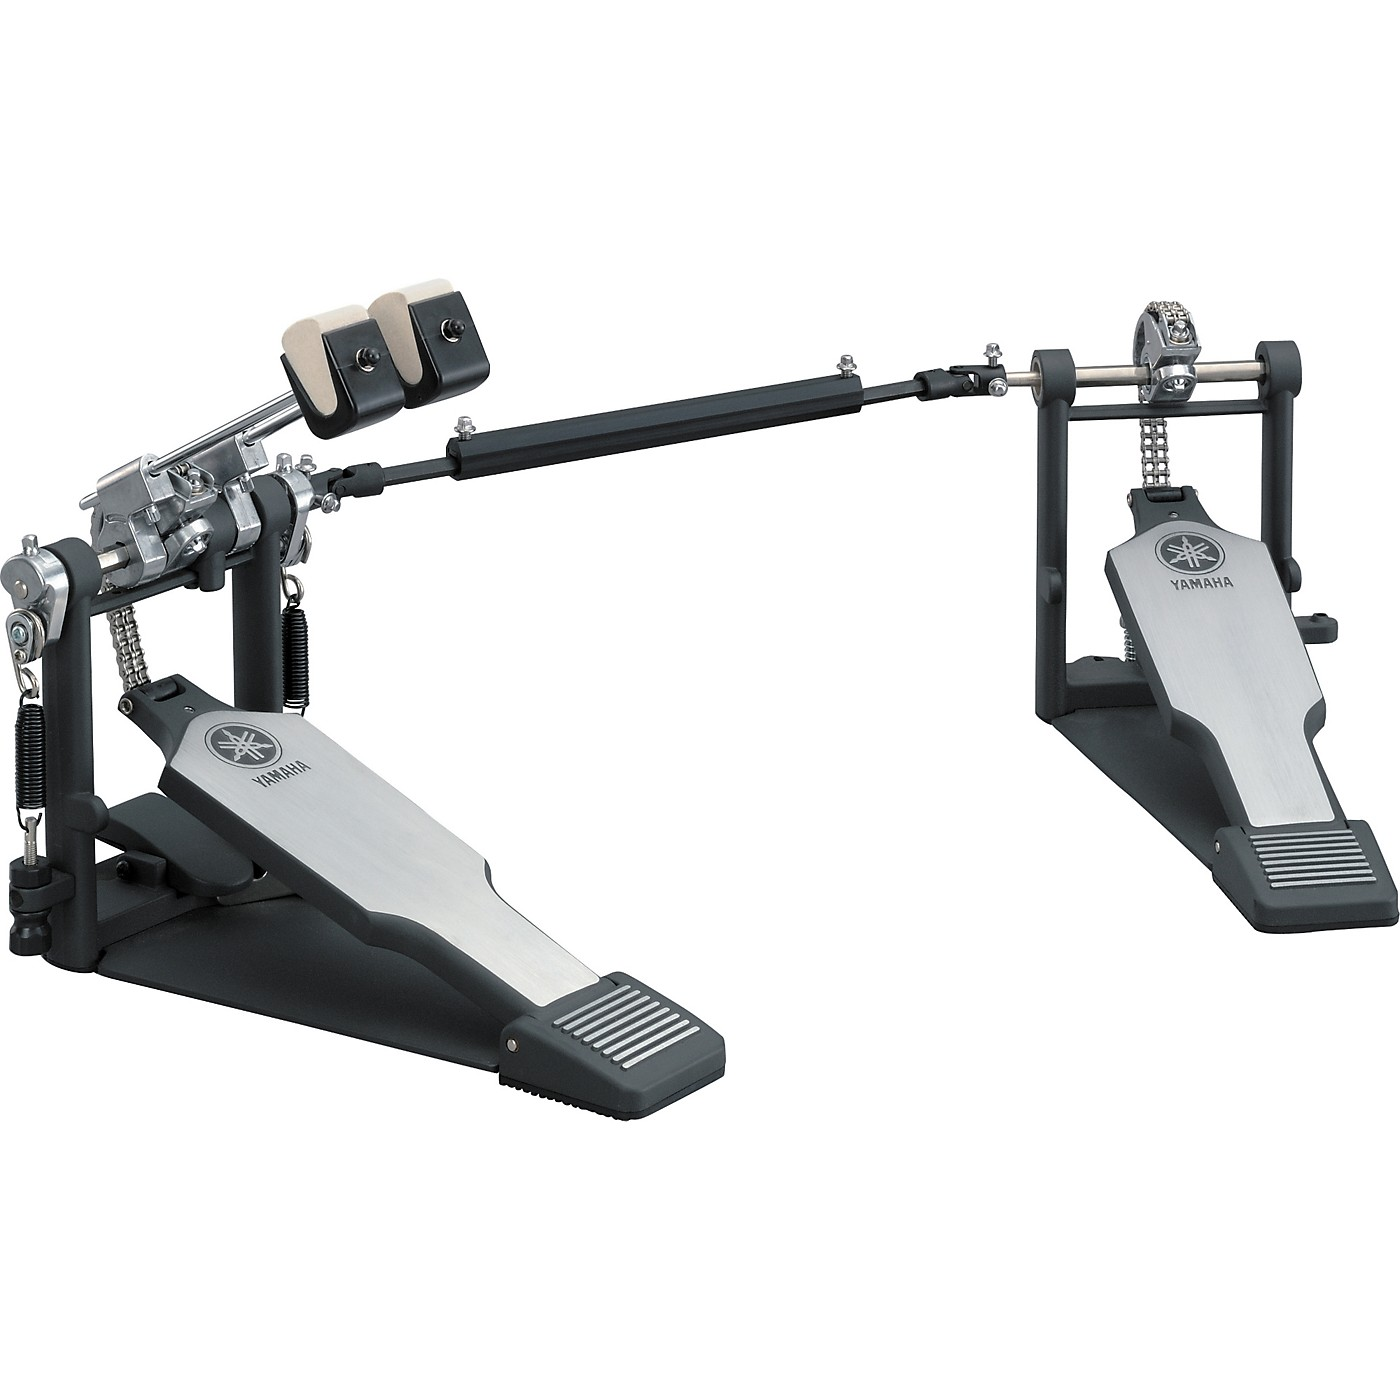 Yamaha Double Bass Drum Pedal, Double Chain Drive, Left Footed thumbnail